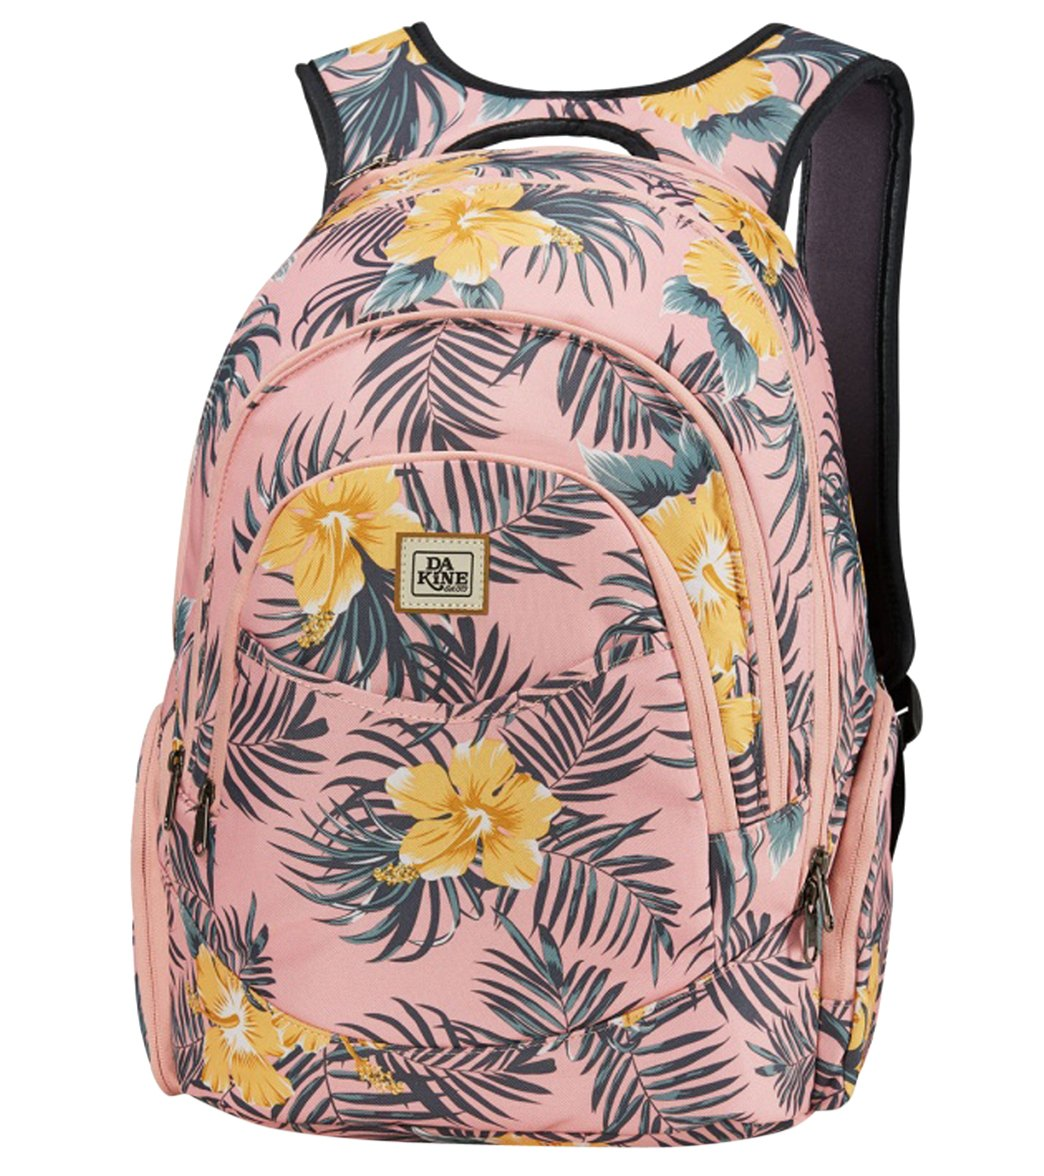 dbcd37f549e Dakine Women's Prom 25L Backpack at SwimOutlet.com - Free Shipping